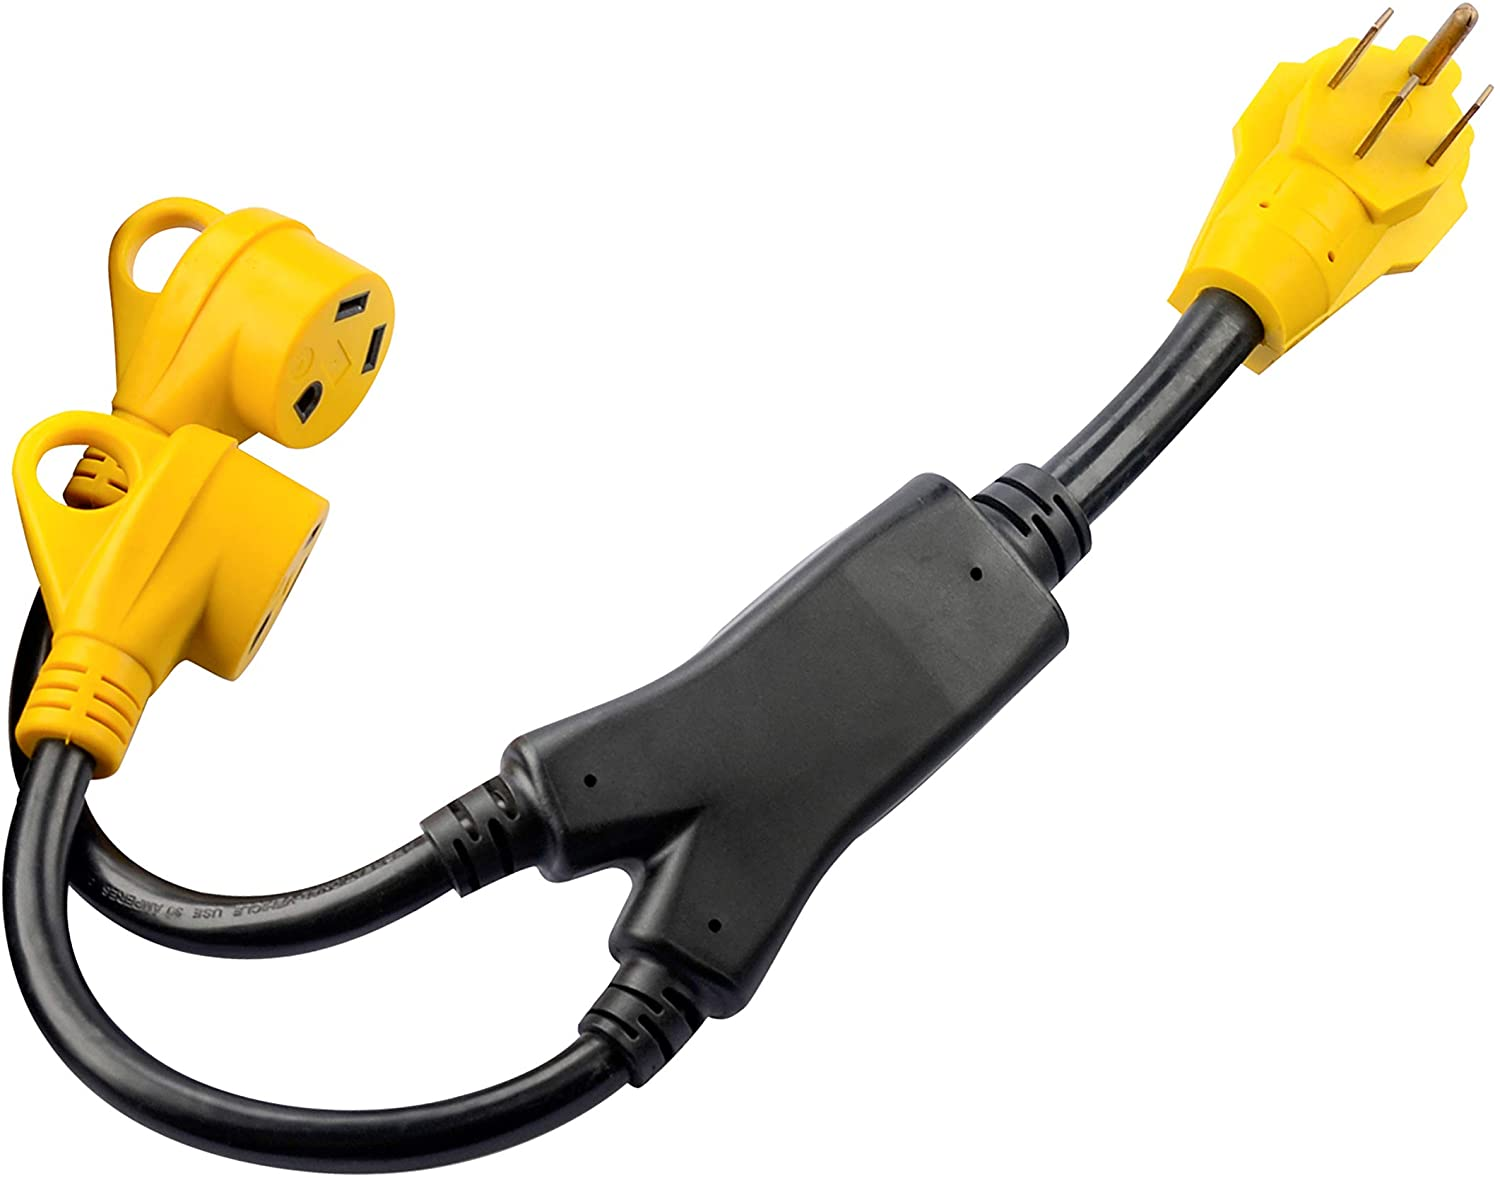 RVGUARD RV Y Adapter Cord 50 Amp 14-50P Male Plug to Two 30 Amp TT-30R Female with LED Power Indicator and Grip Handle